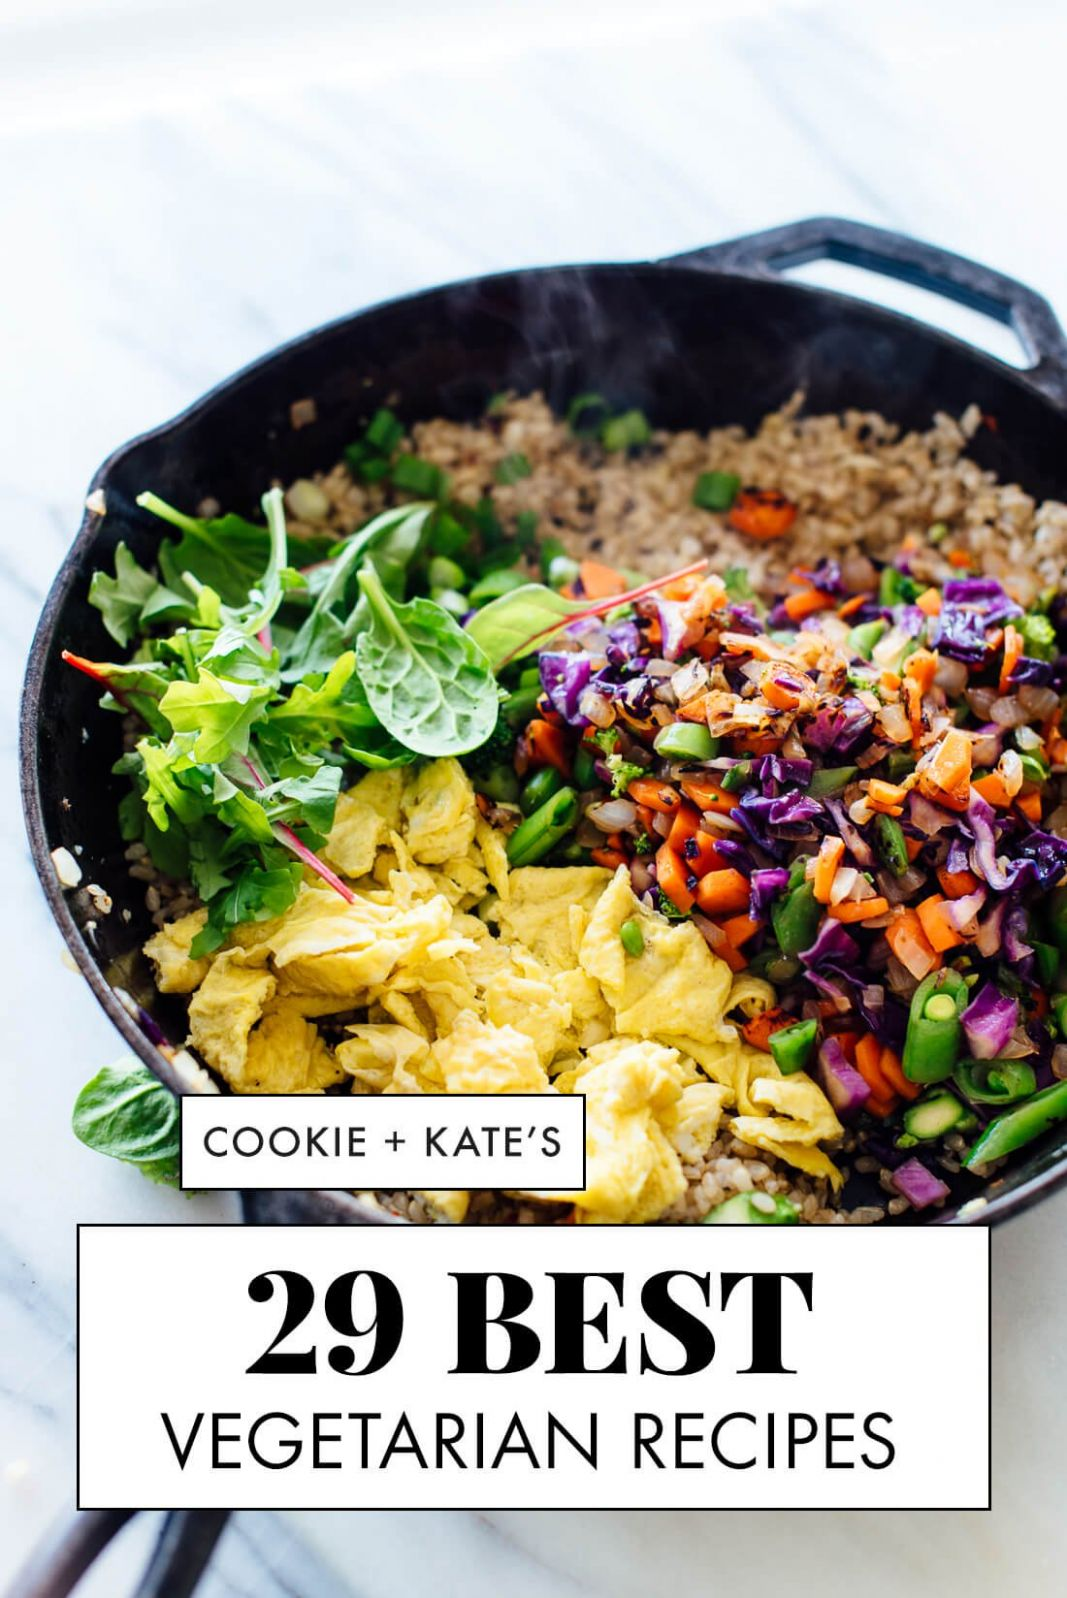 9 Best Vegetarian Recipes - Cookie and Kate